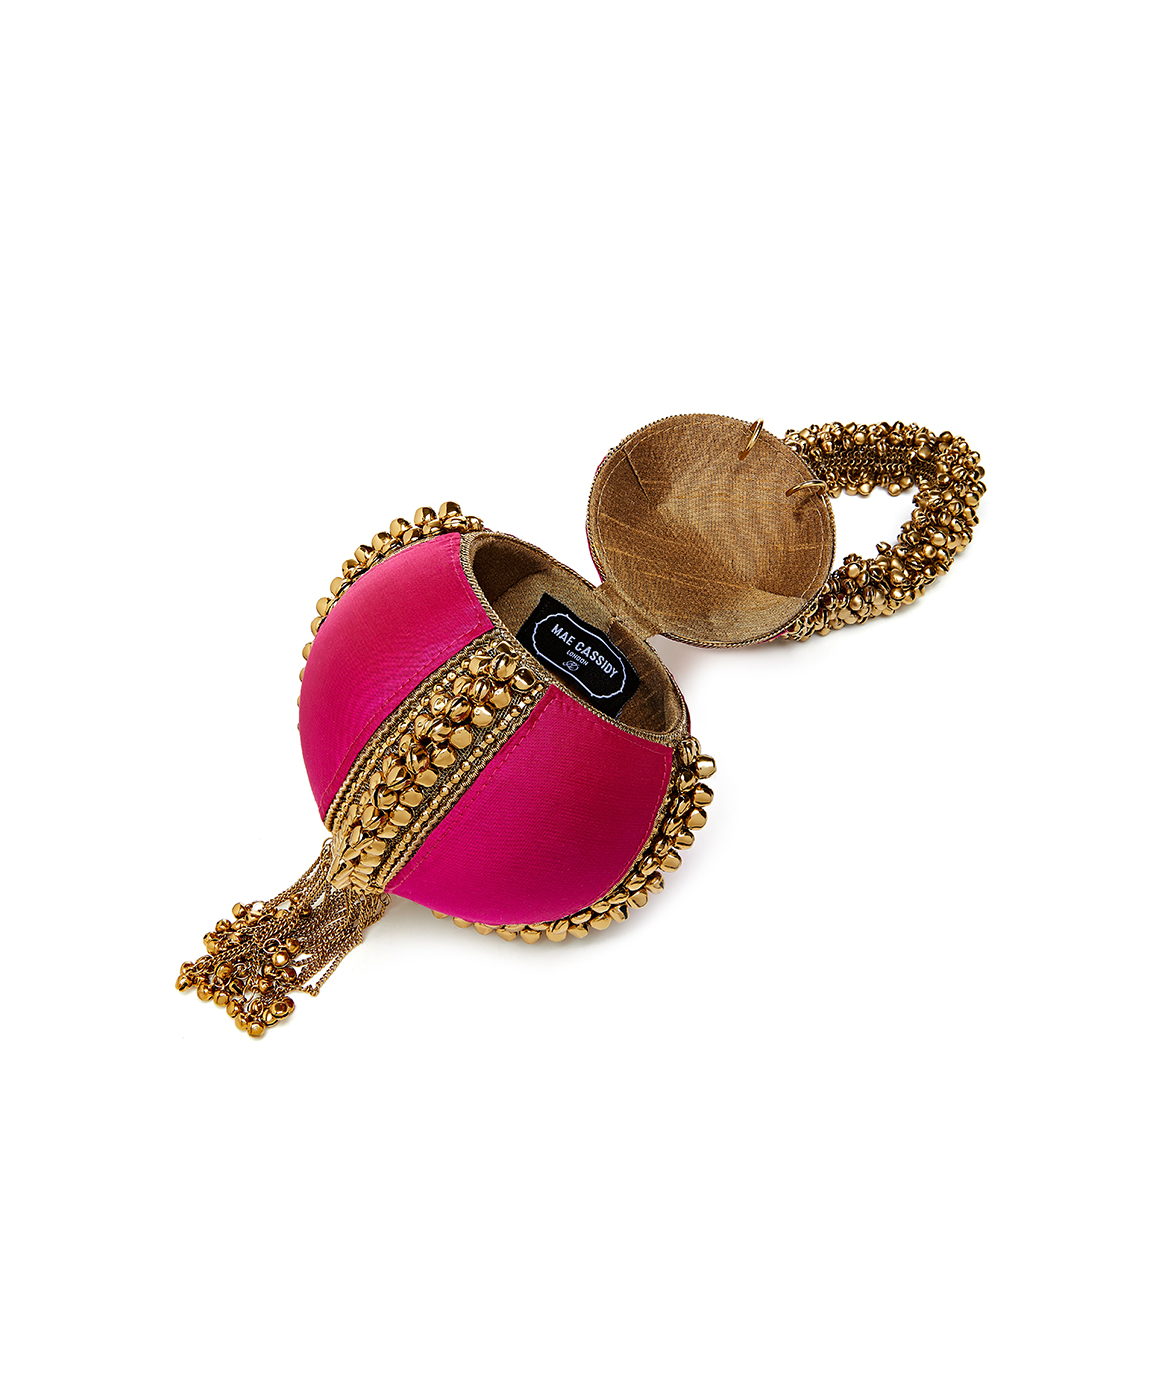 Babi Bracelet – Power Pink & Antique Gold